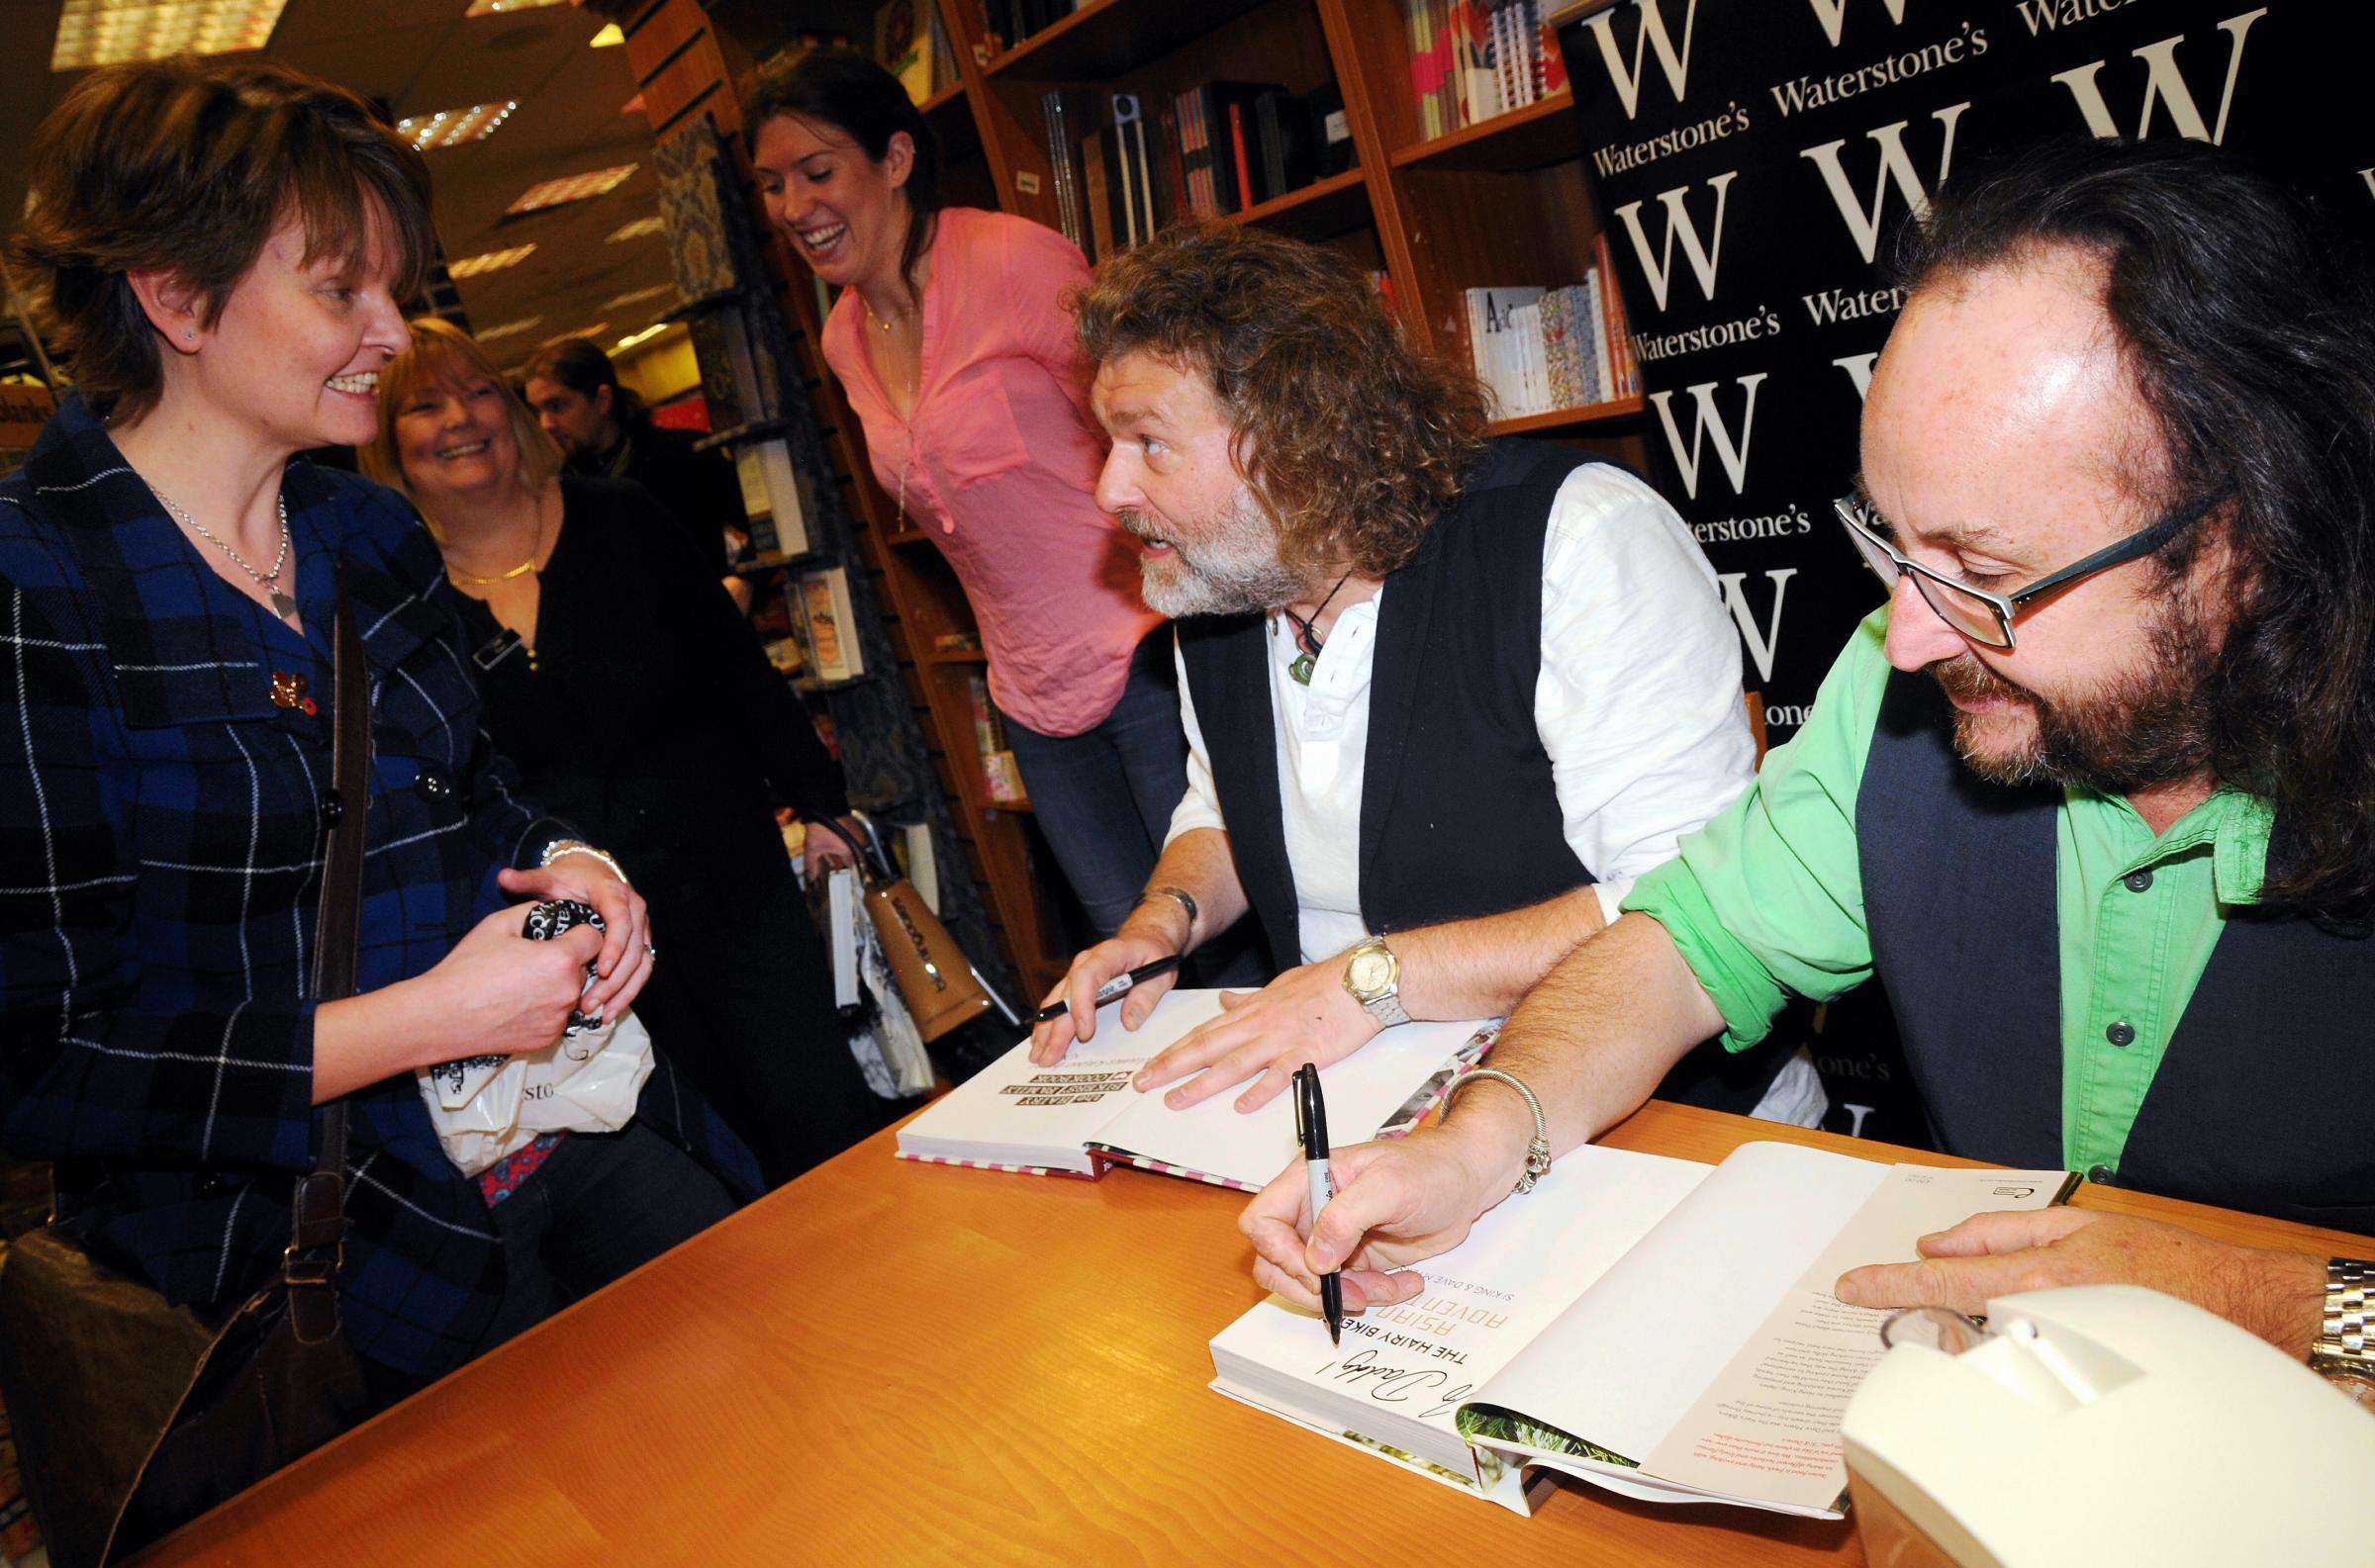 The Hairy Bikers, Si King and Dave Myers, sign copies of their new book in Waterstone's, Festival Place.